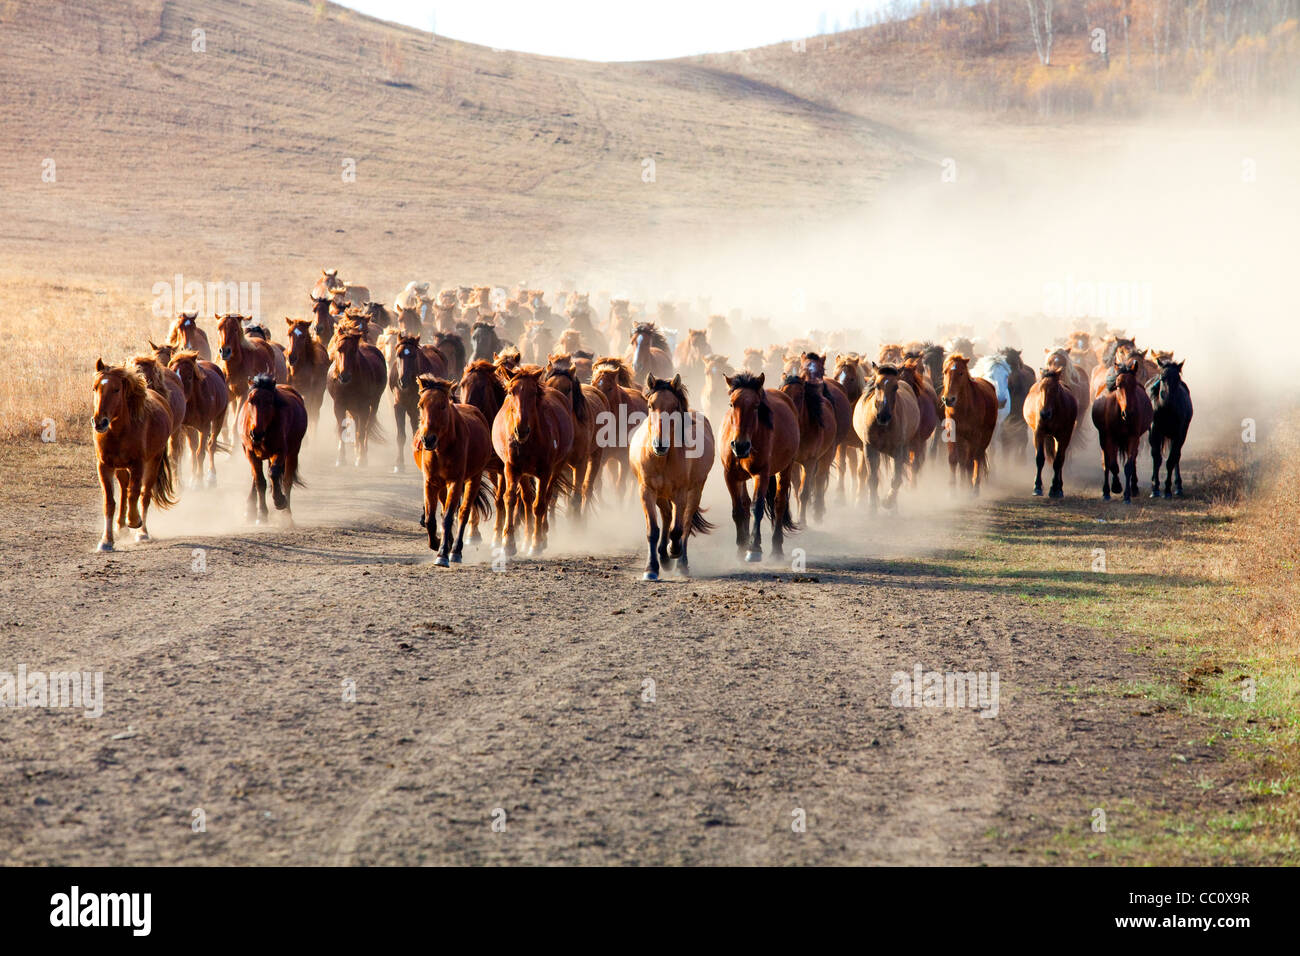 A herd of horses running in Inner Mongolia - Stock Image